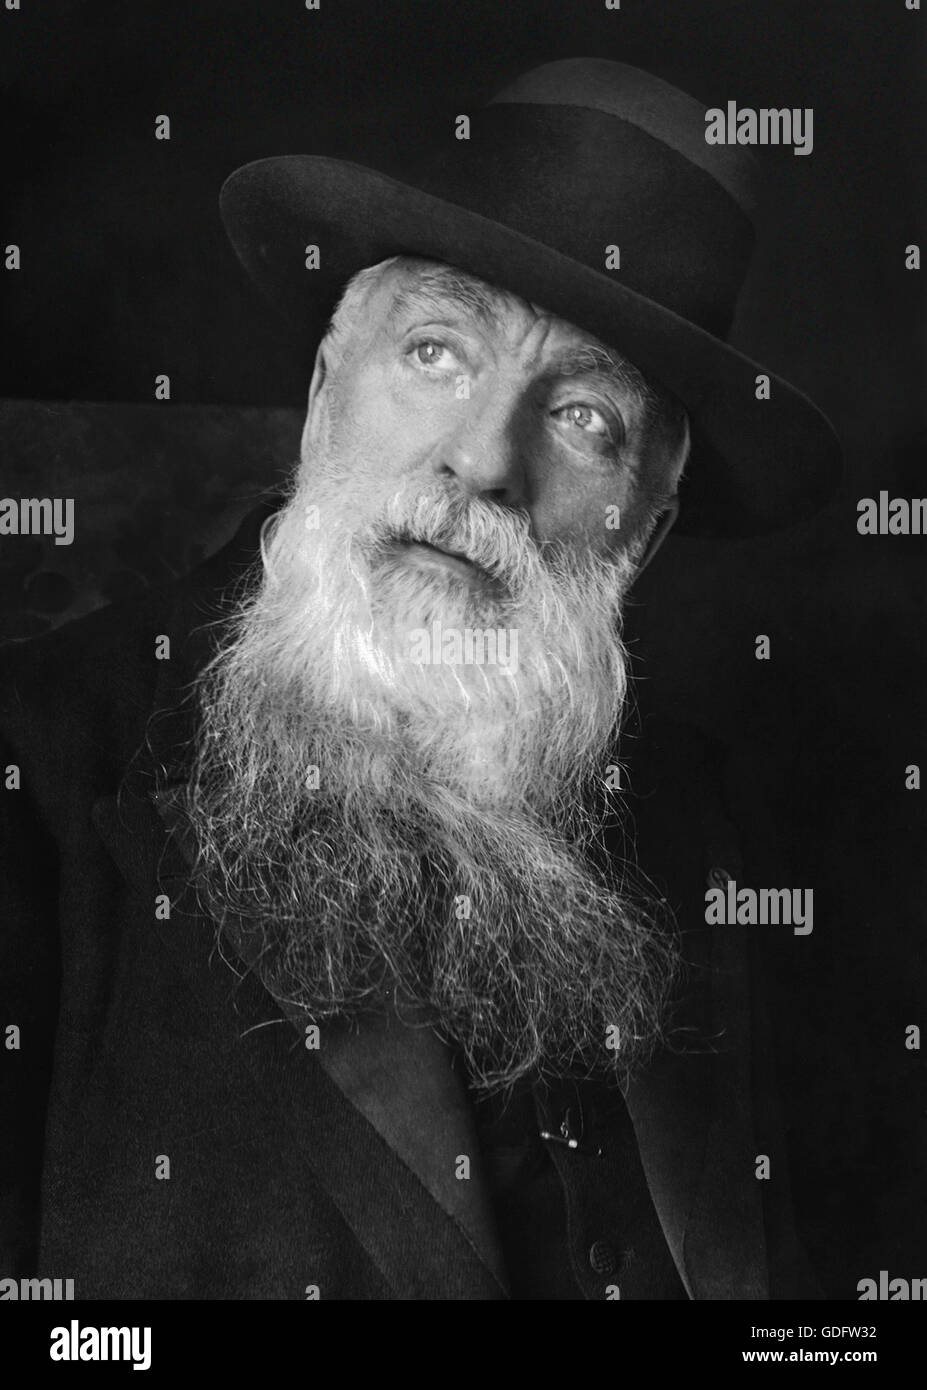 Auguste Rodin. Portrait of the French sculptor Auguste Rodin (François Auguste René Rodin: 1840-1917), - Stock Image